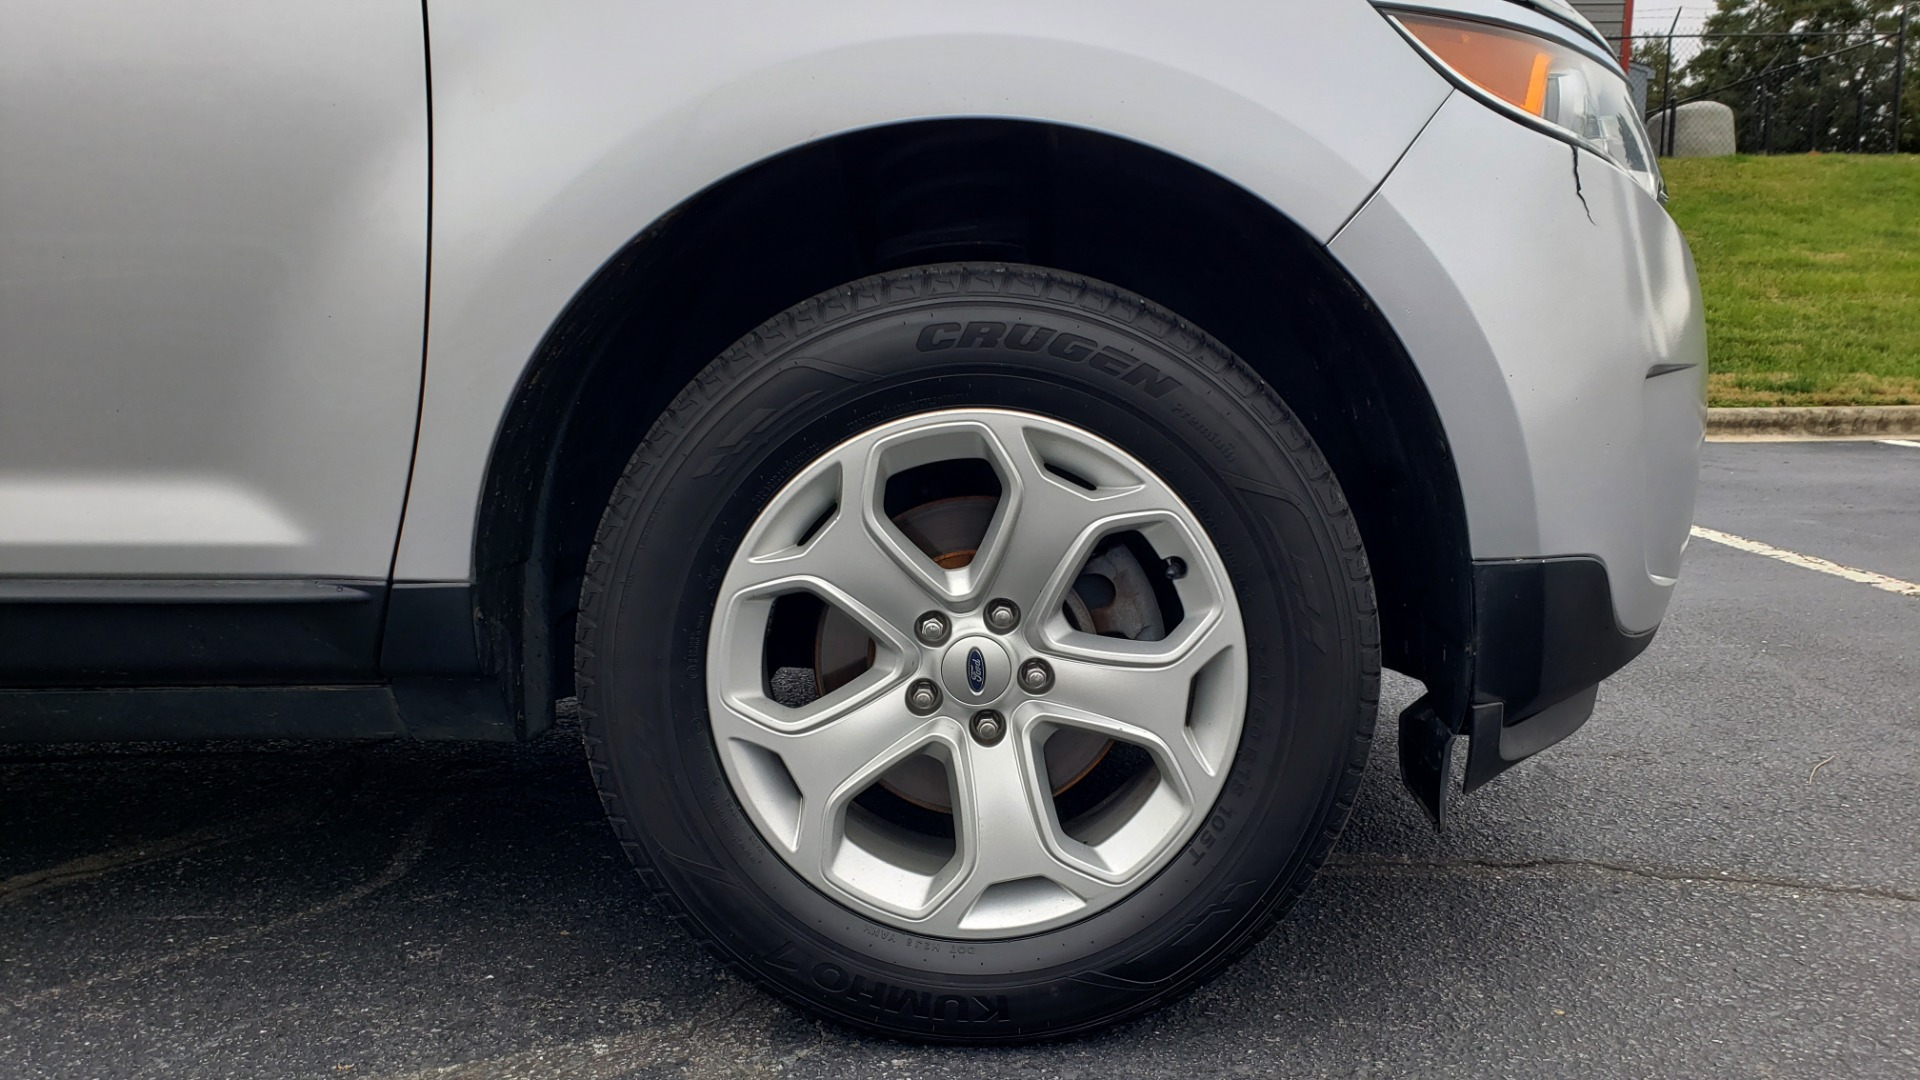 Used 2013 Ford EDGE SE / AWD / 18 IN WHEELS / SYNC / 3.5L V6 / AUTO for sale Sold at Formula Imports in Charlotte NC 28227 69